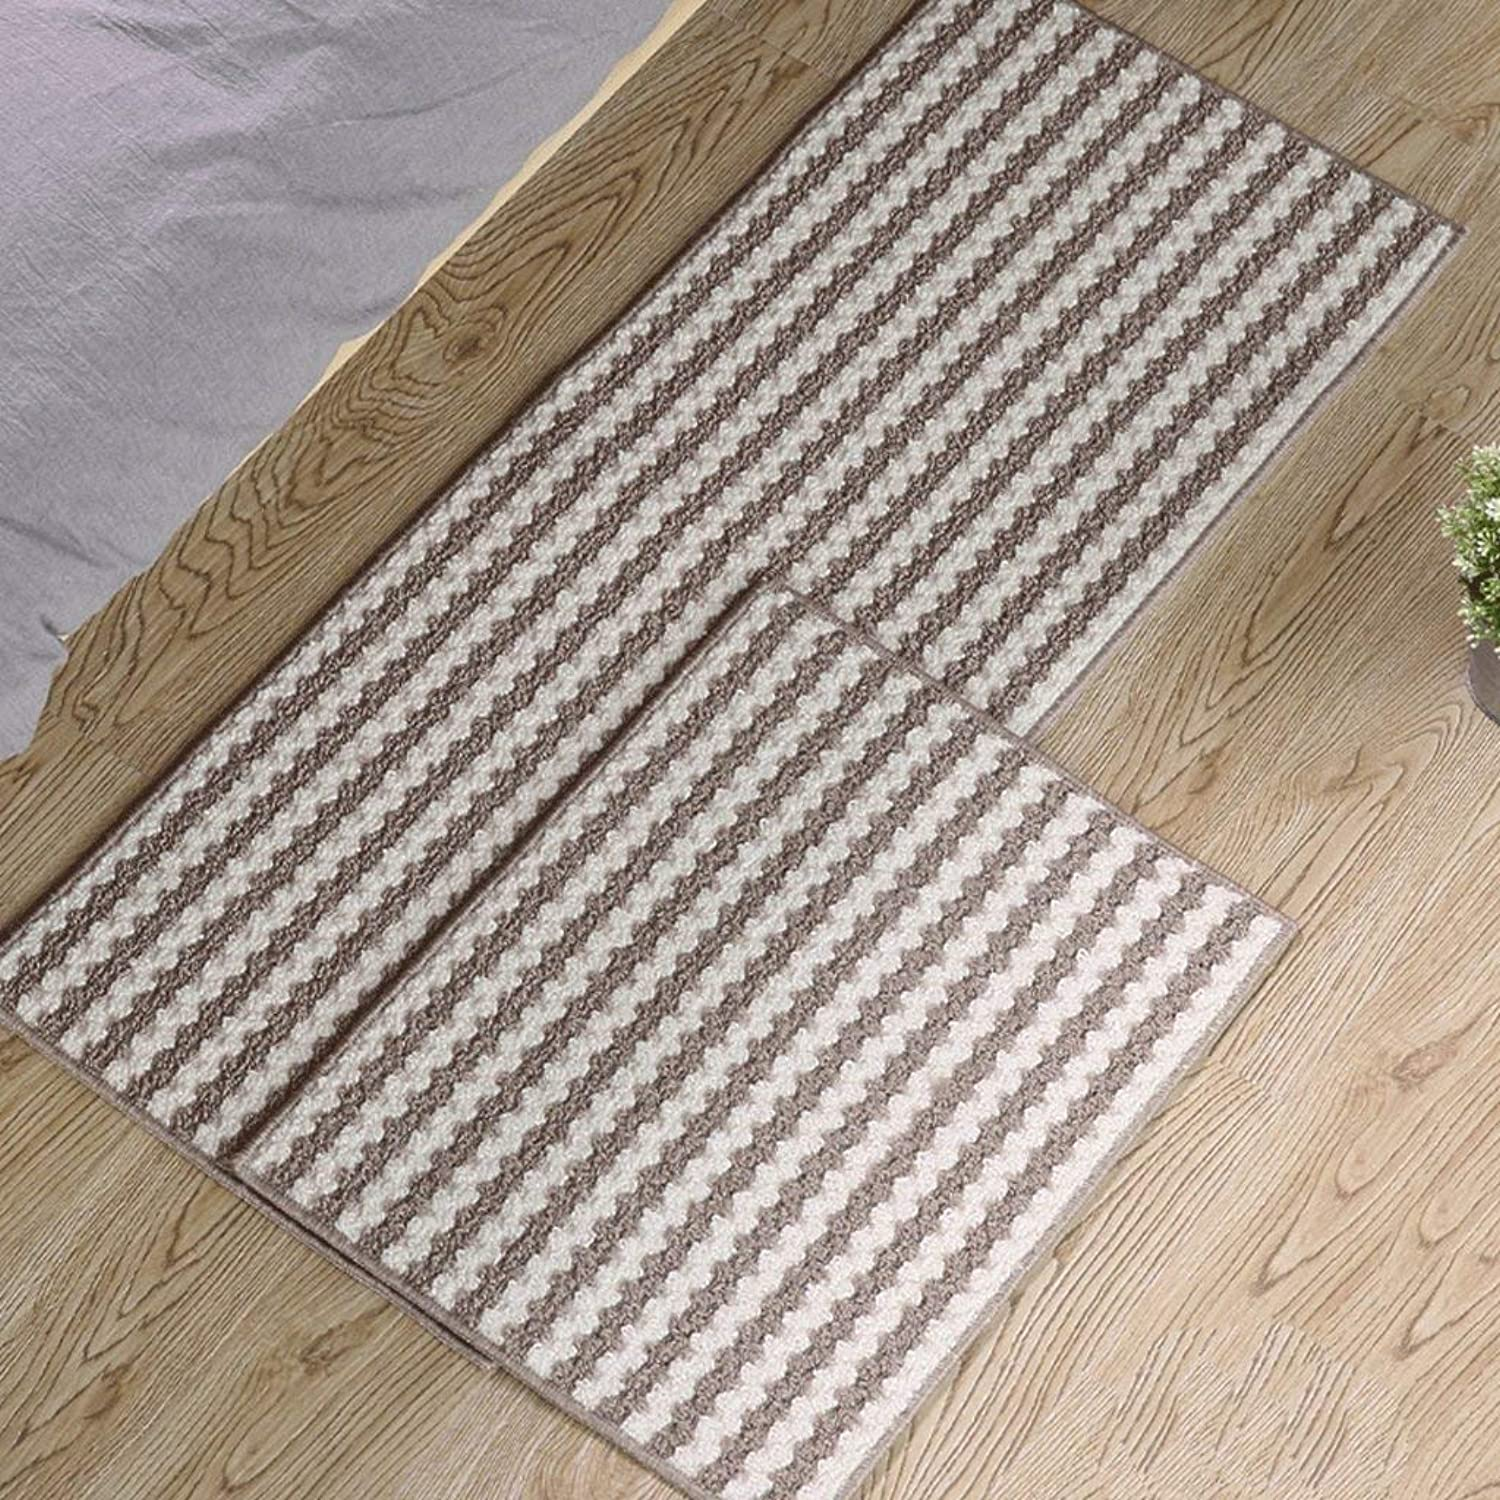 Door Matt Indoor Non Slip Hard Wearing Barrier Mat Kitchen Mats Long Strip Mat Mattresses Mattresses Room Entrance Cushions Non-Slip, Kejing